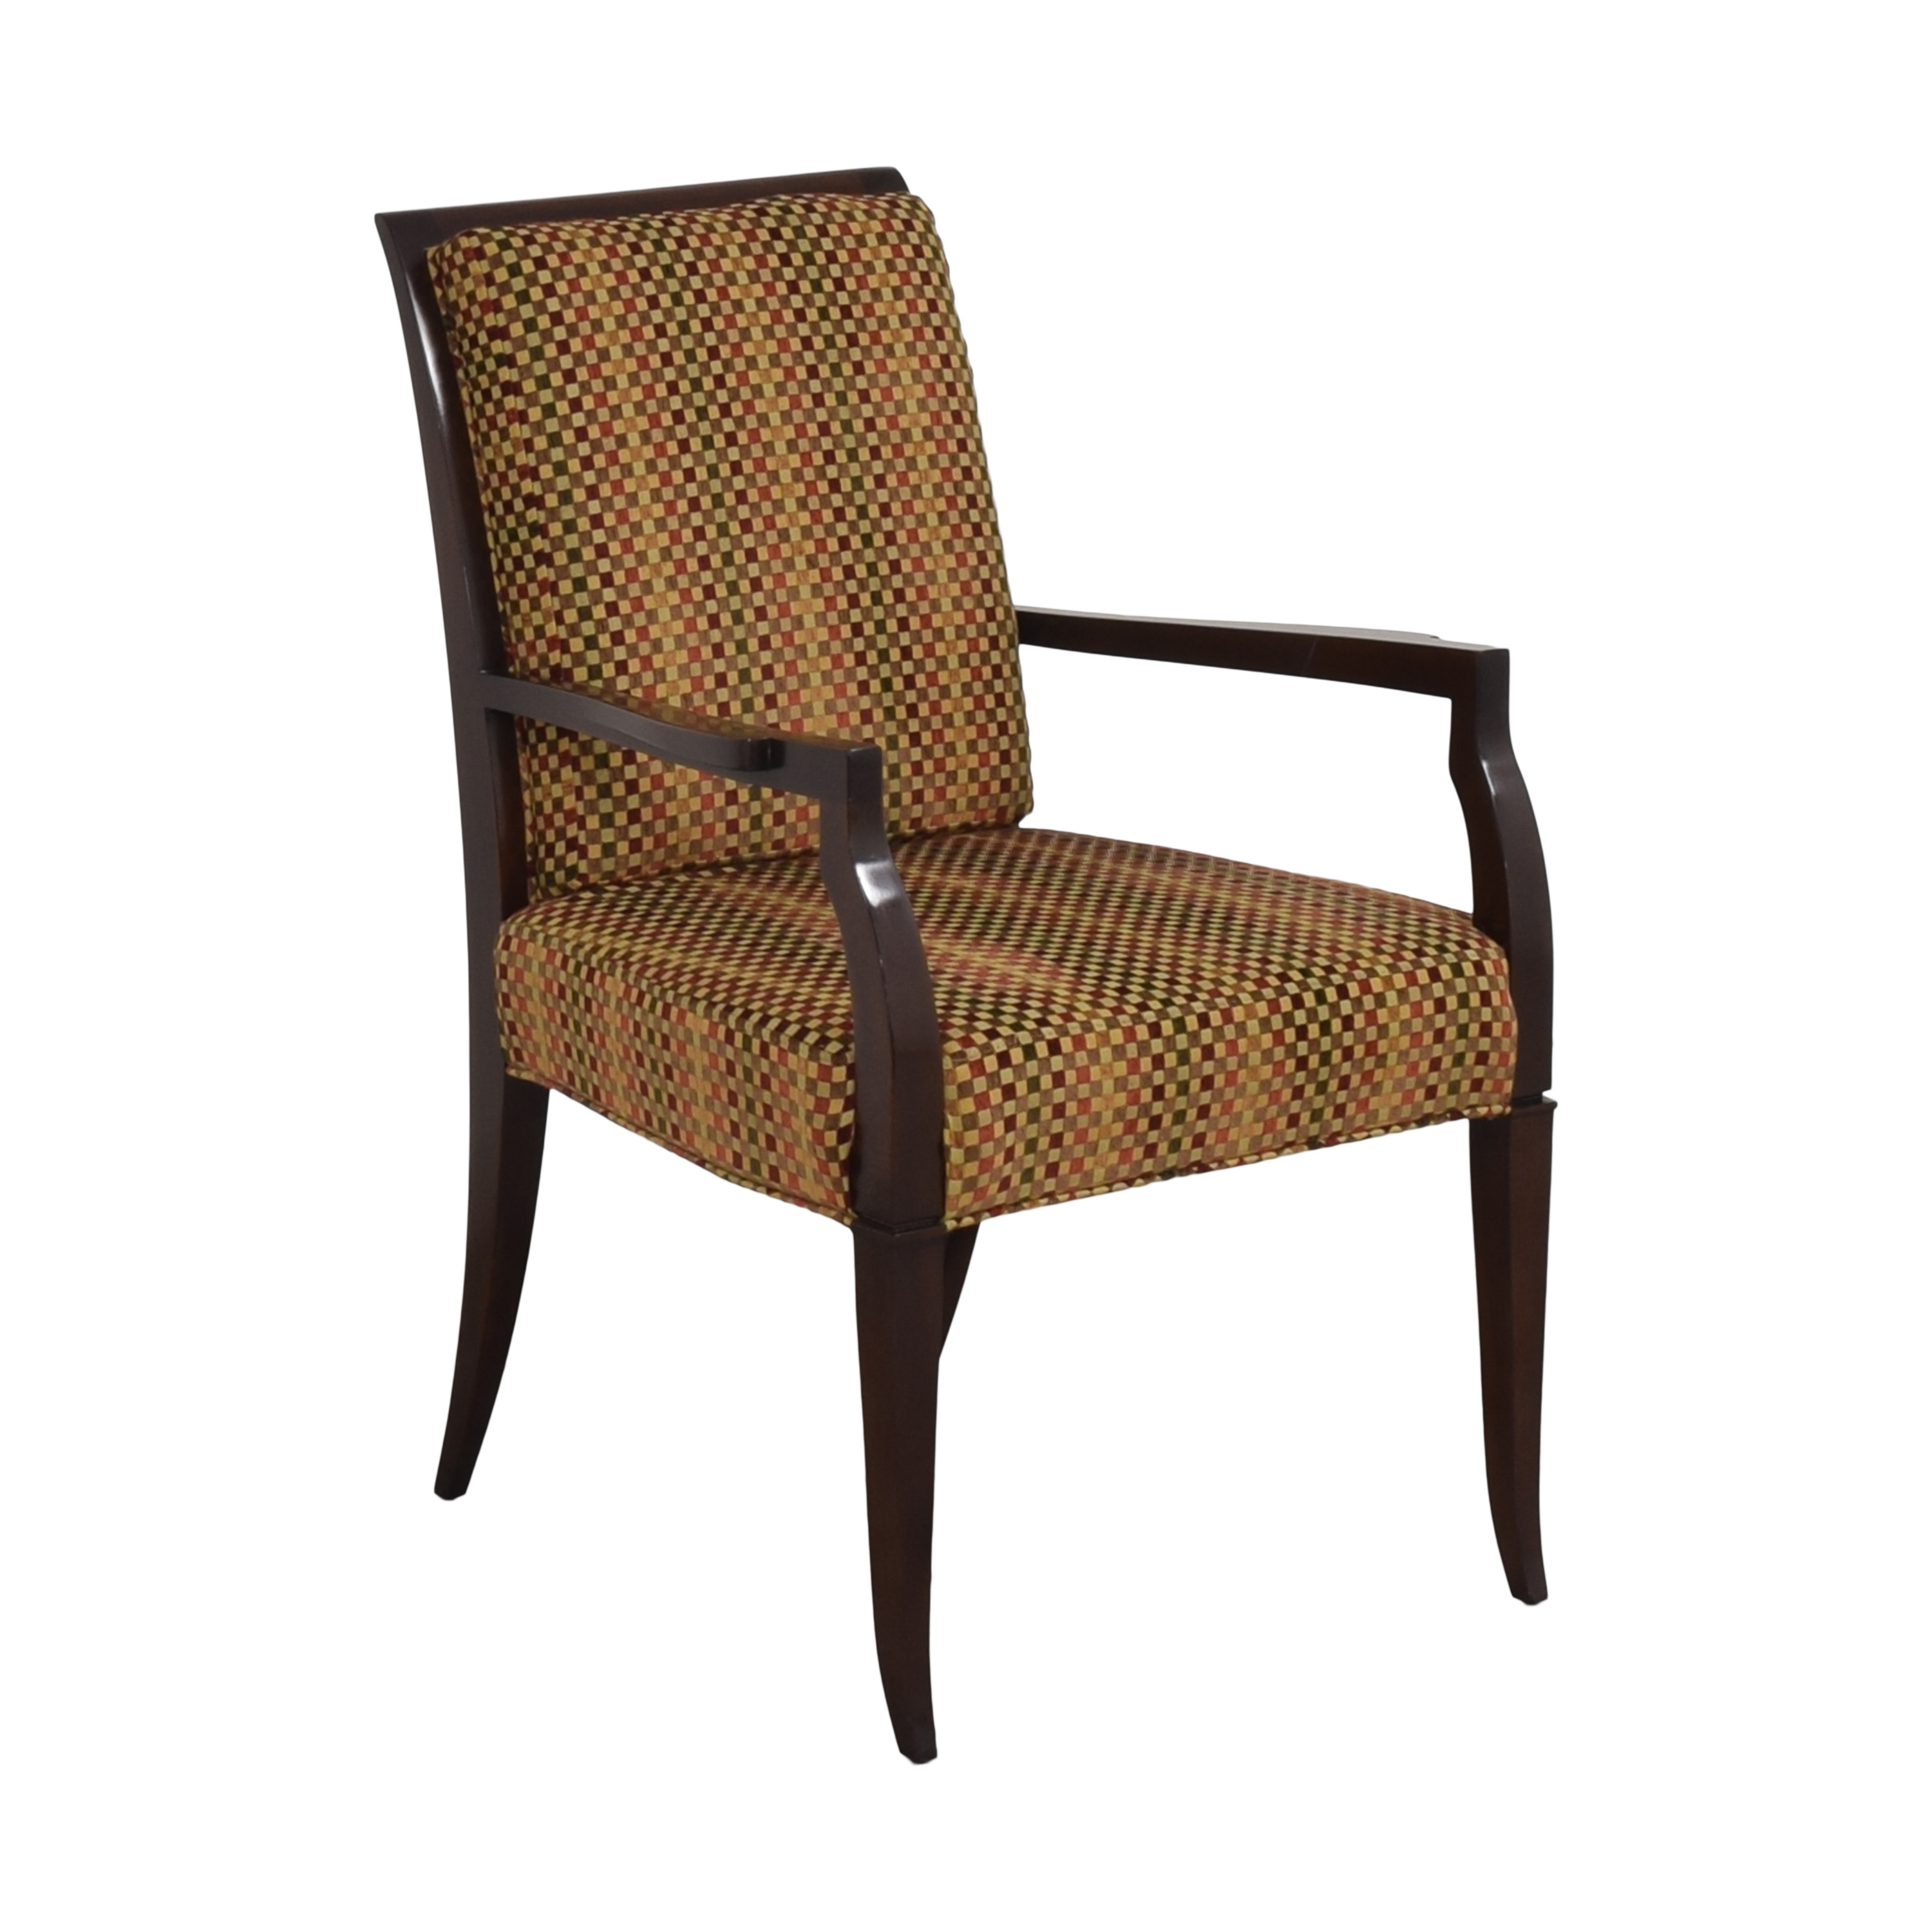 Council Upholstered Chair sale